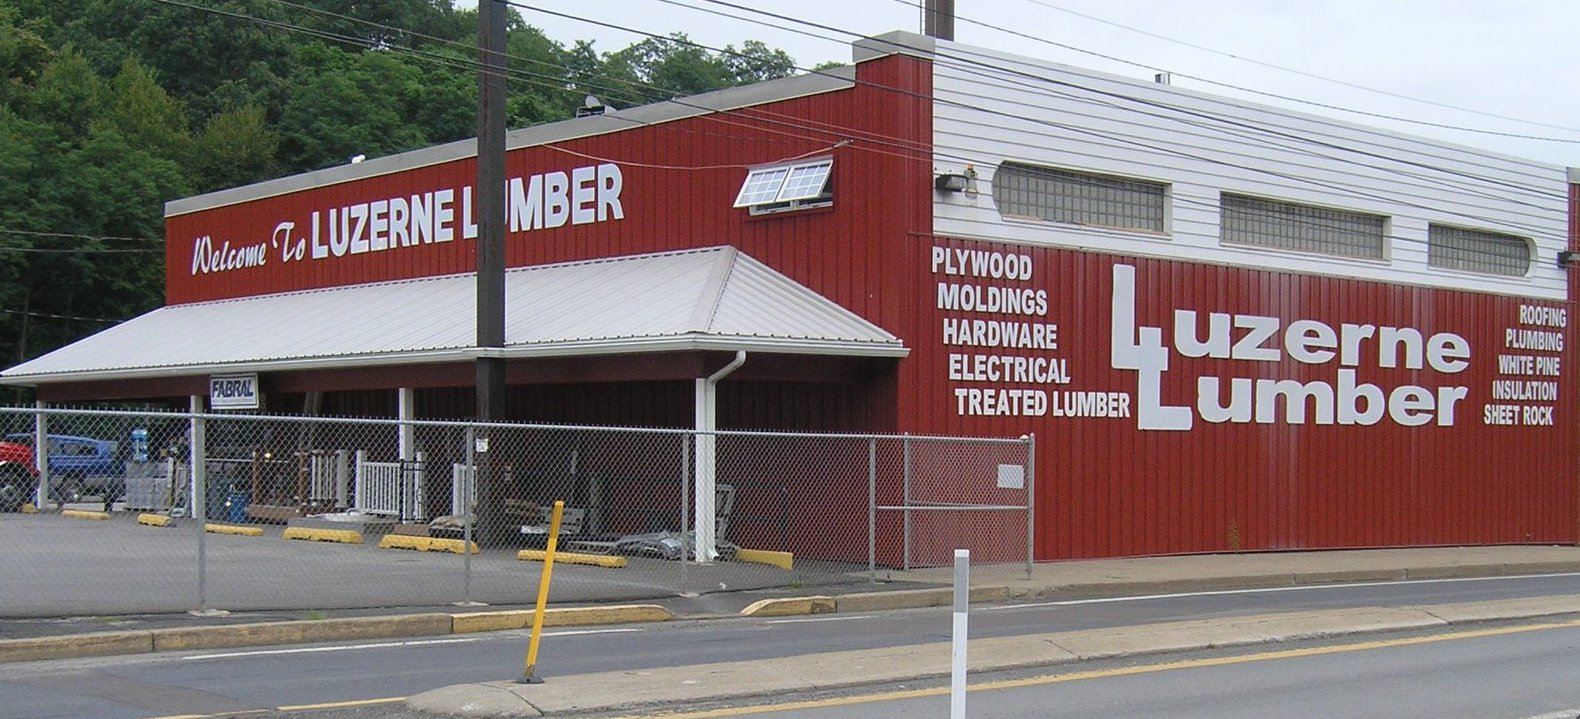 Small Business: Luzerne Lumber Company